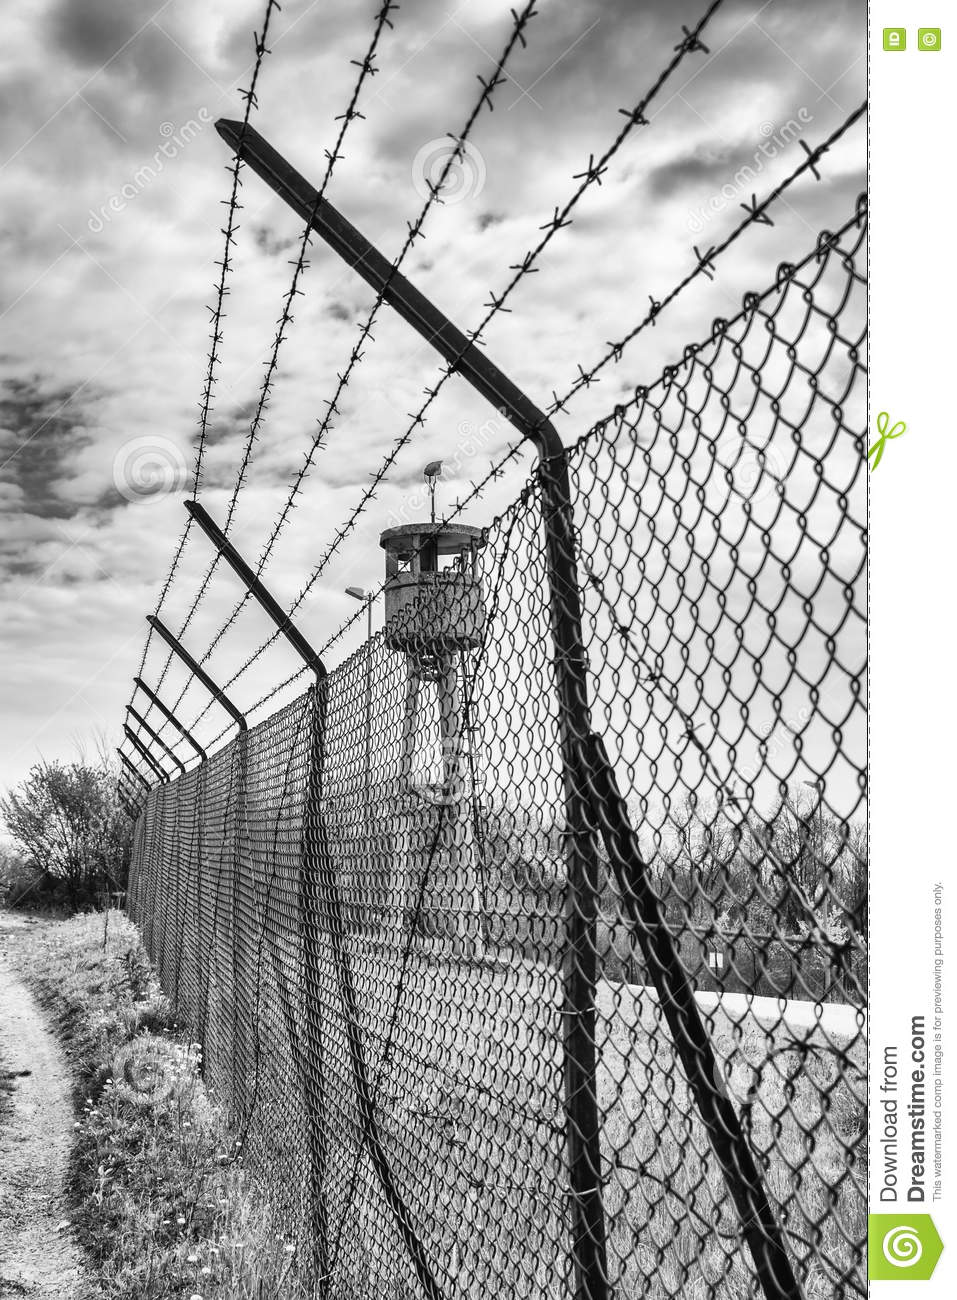 Abandoned Sentry Box Tower Isolated By A Net With Barbed Wire. Stock ...